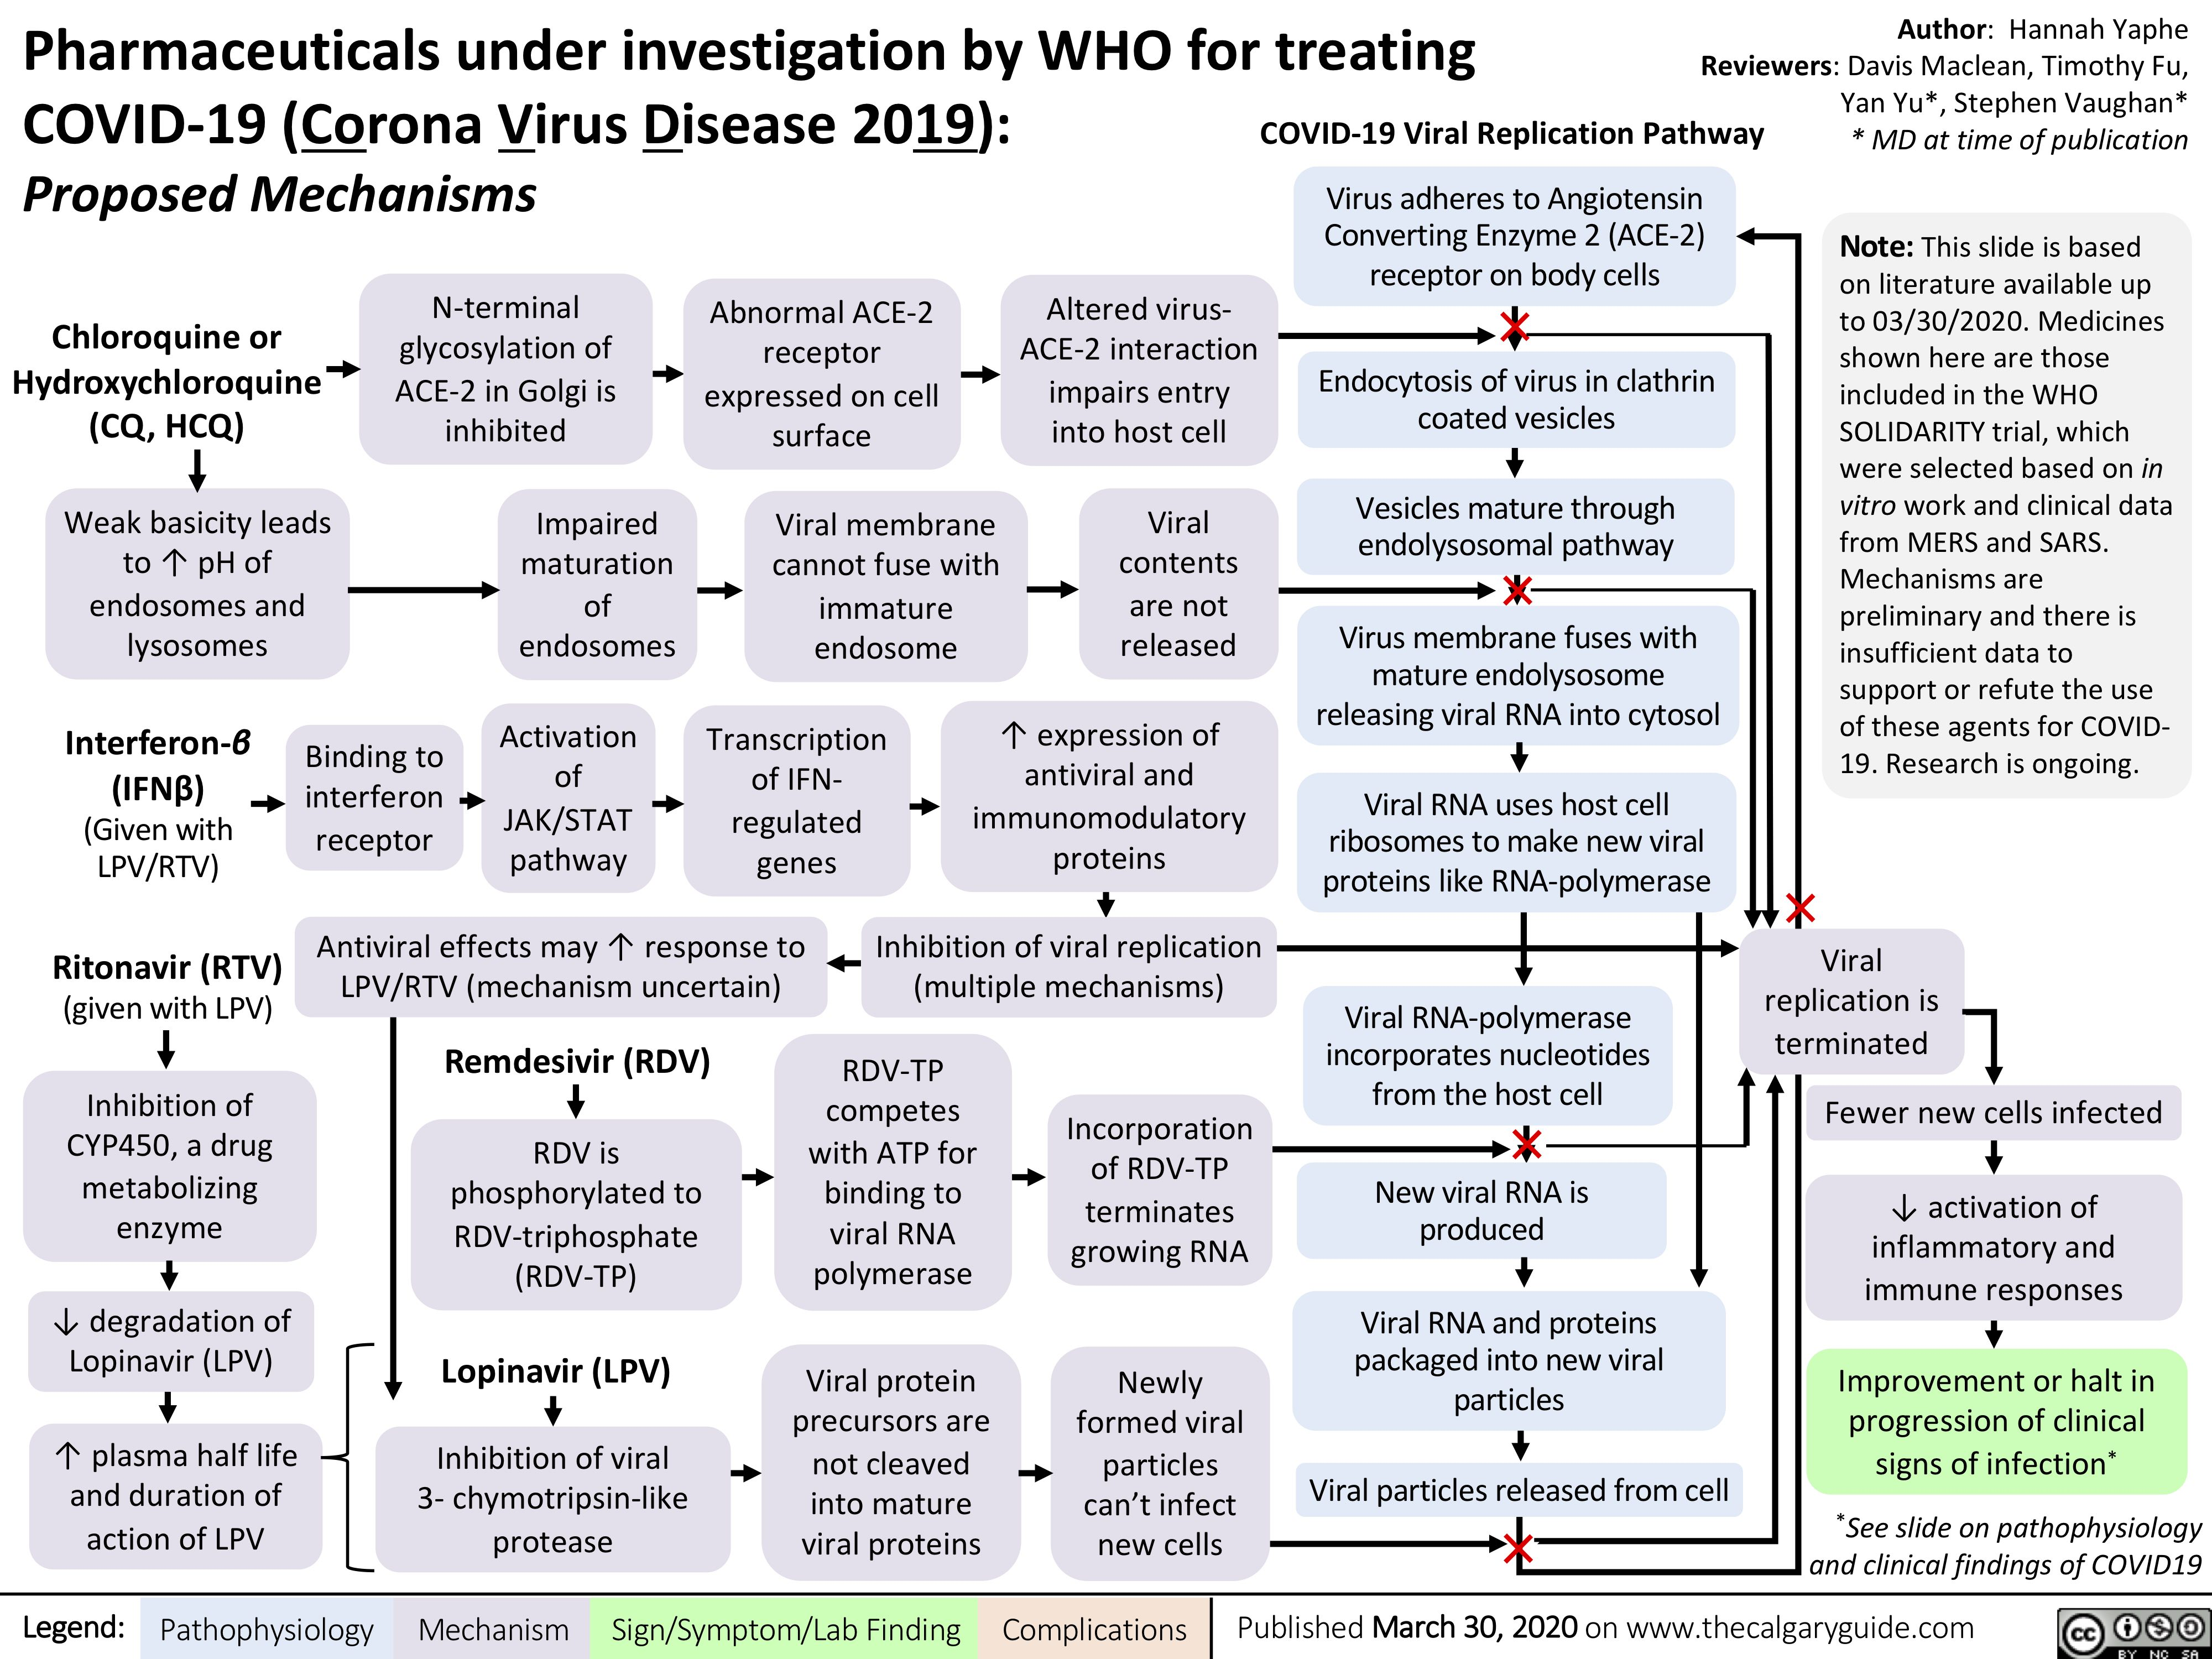 Pharmaceuticals under investigation by WHO for treating COVID-19: Proposed Mechanisms